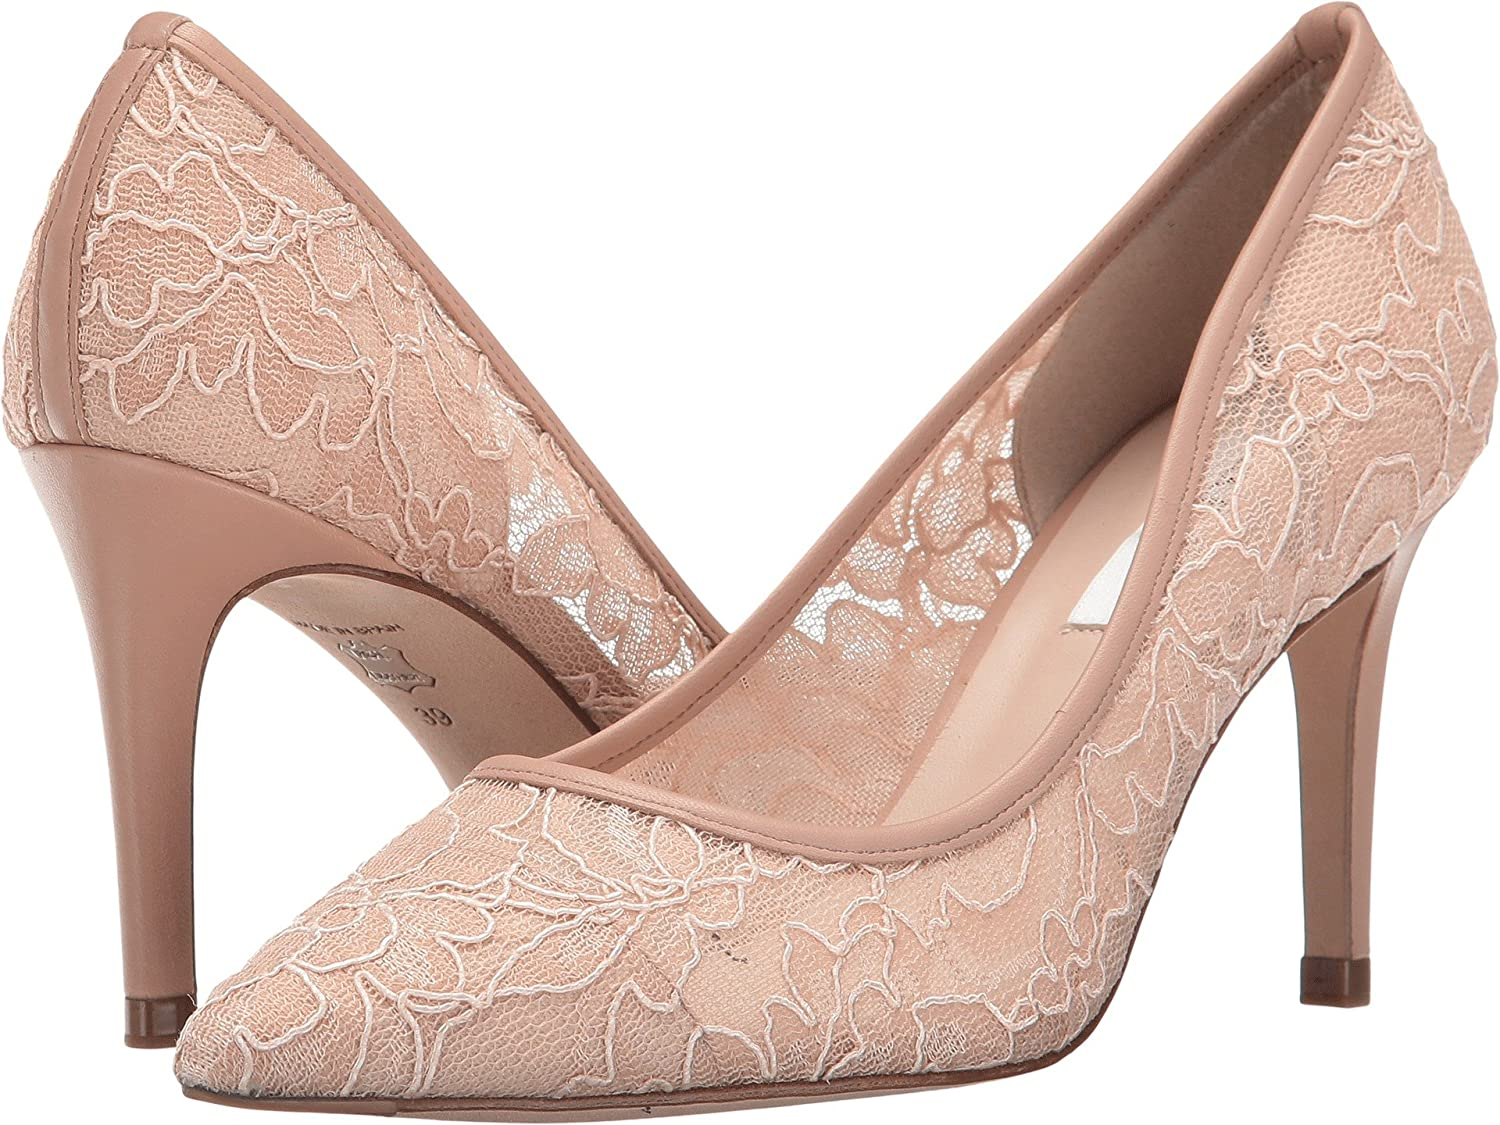 Marshmallow Lace Nappa L.K. Bennett Women's Floret Dress Pump